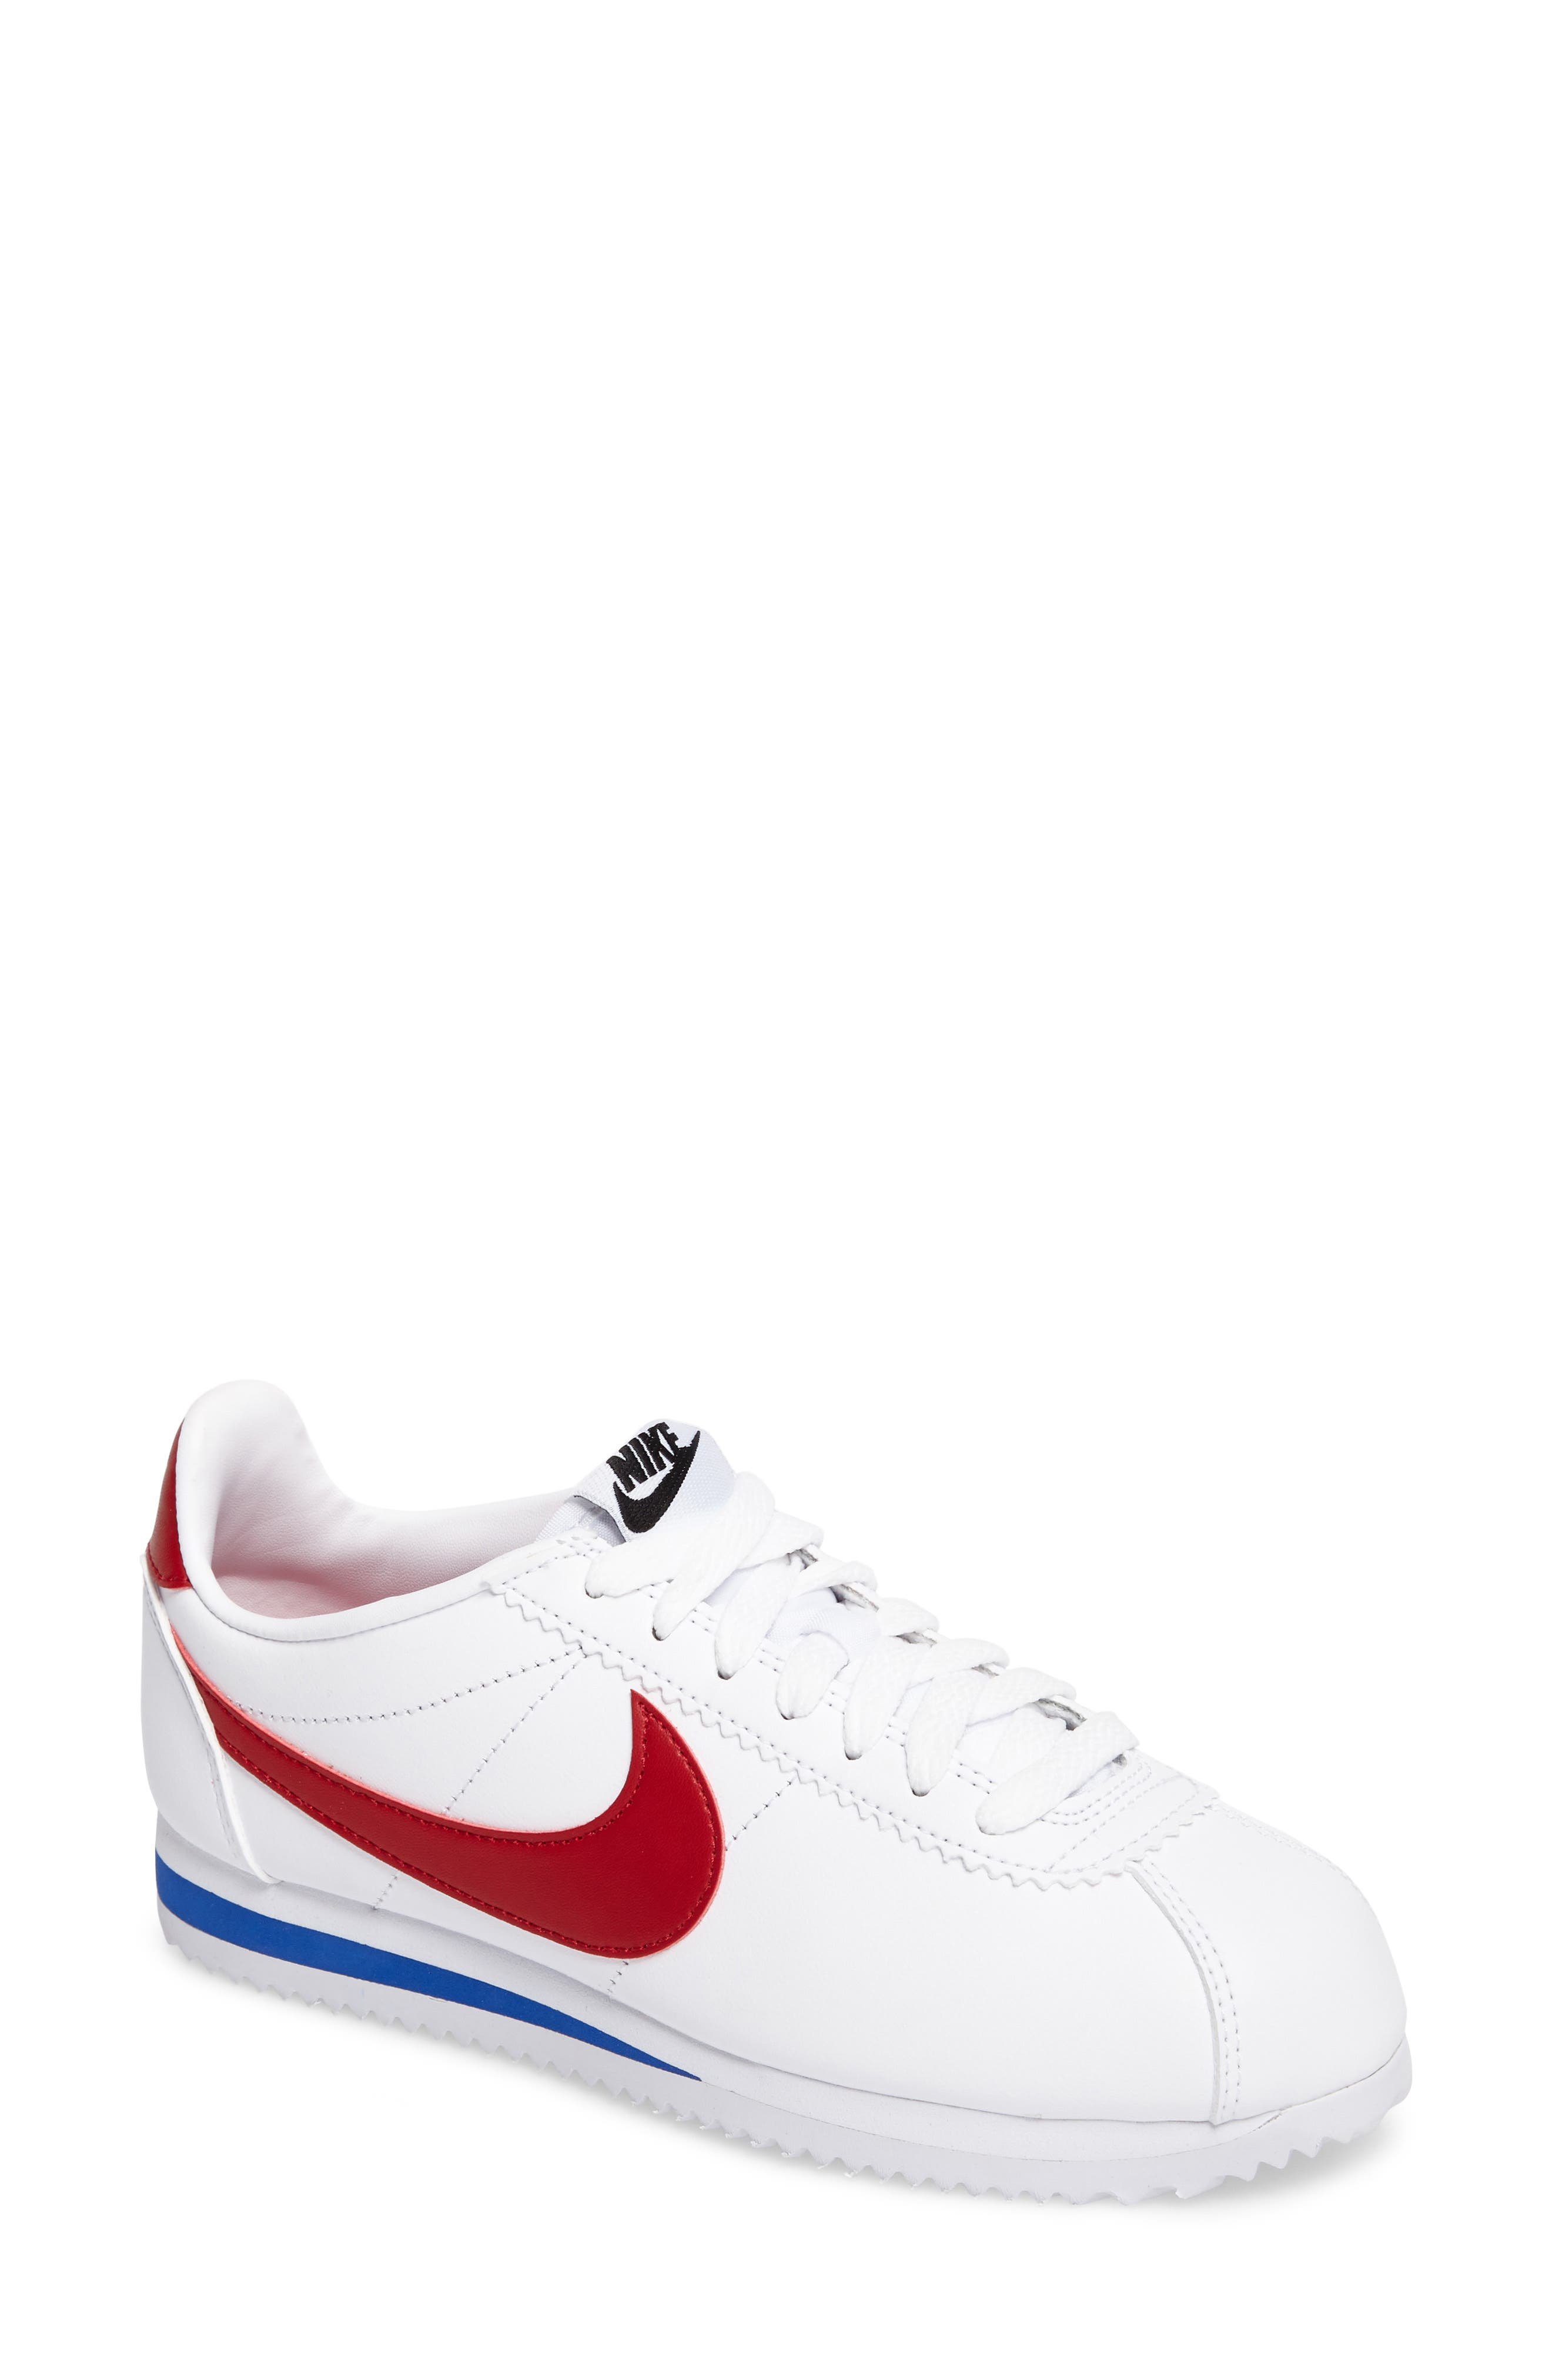 Shoes Women's SneakersNordstrom White Nike and sQdxBhrtCo